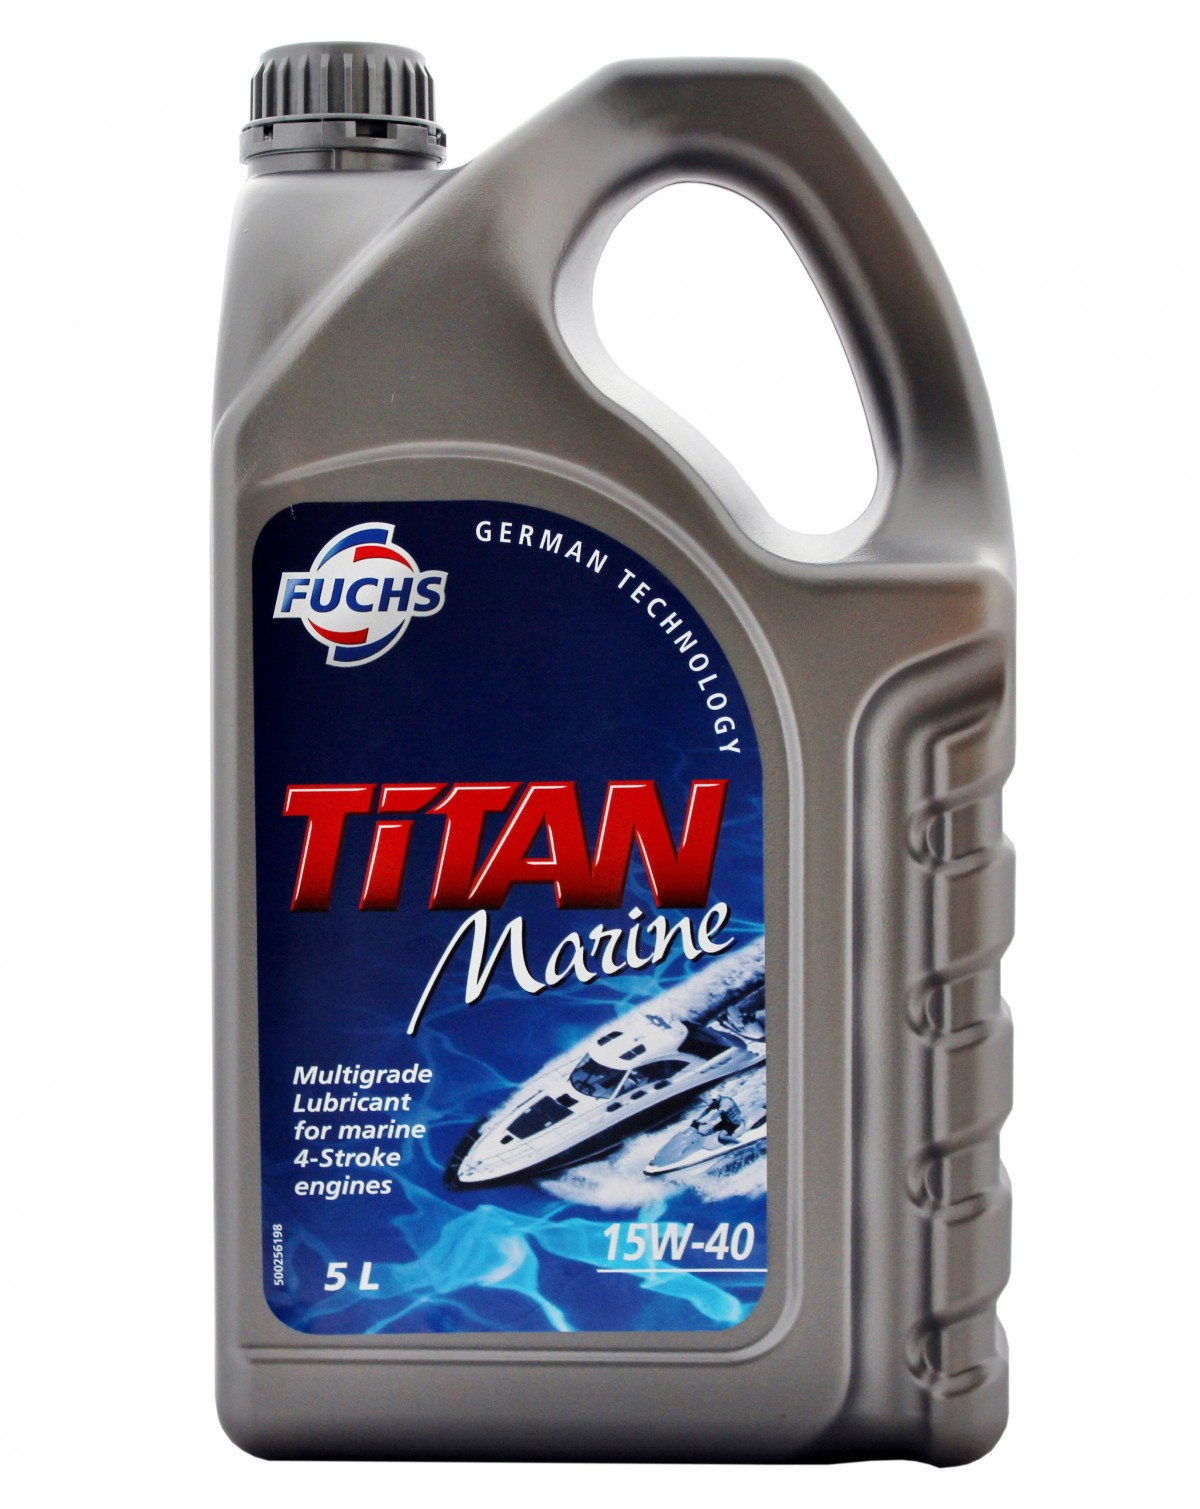 Titan Marine 15W-40 lubricant for 4-stroke inboard and